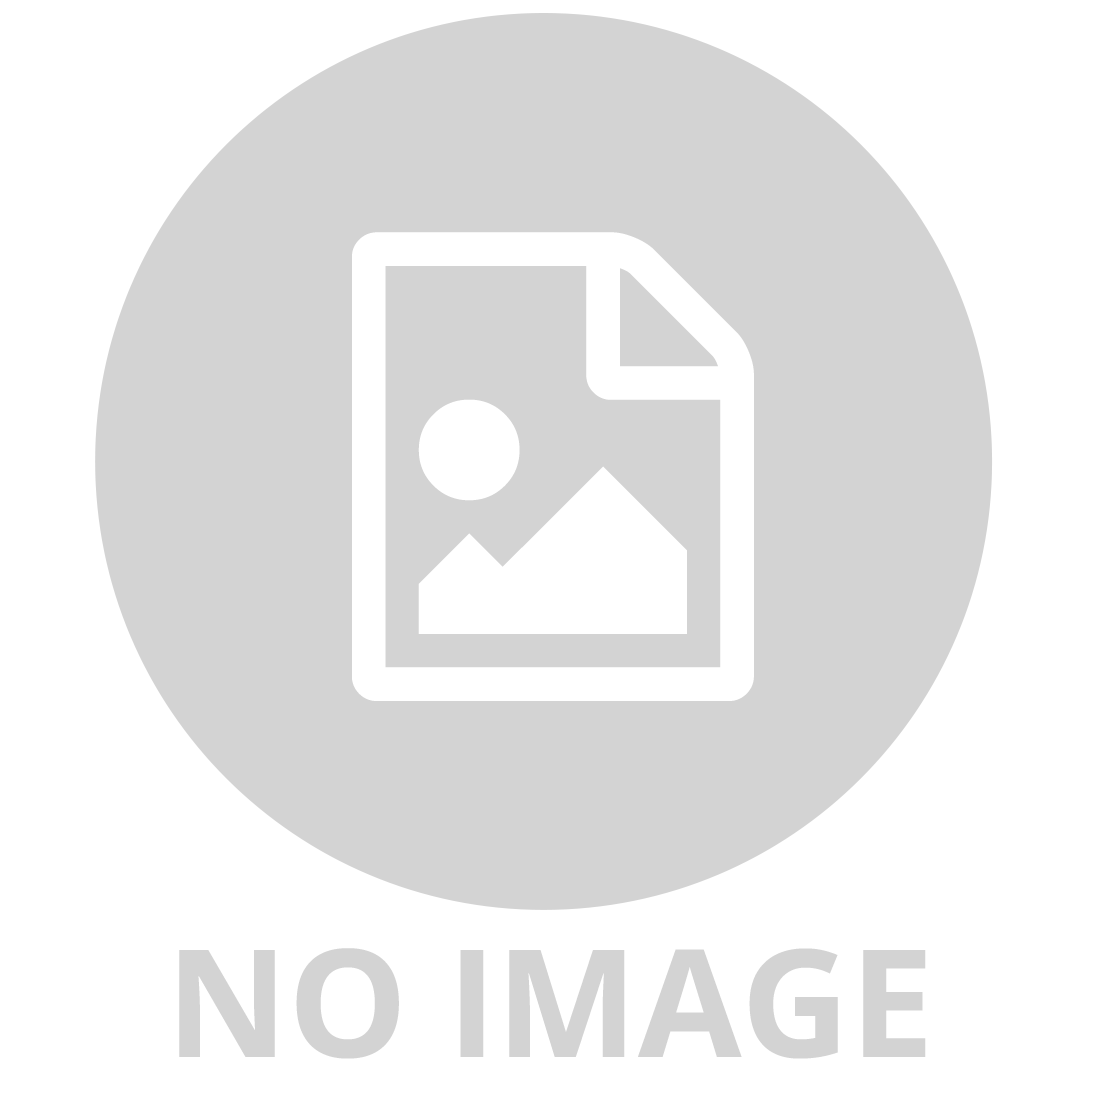 TAMIYA TS-26 PURE WHITE SPRAY PAINT FOR PLASTICS